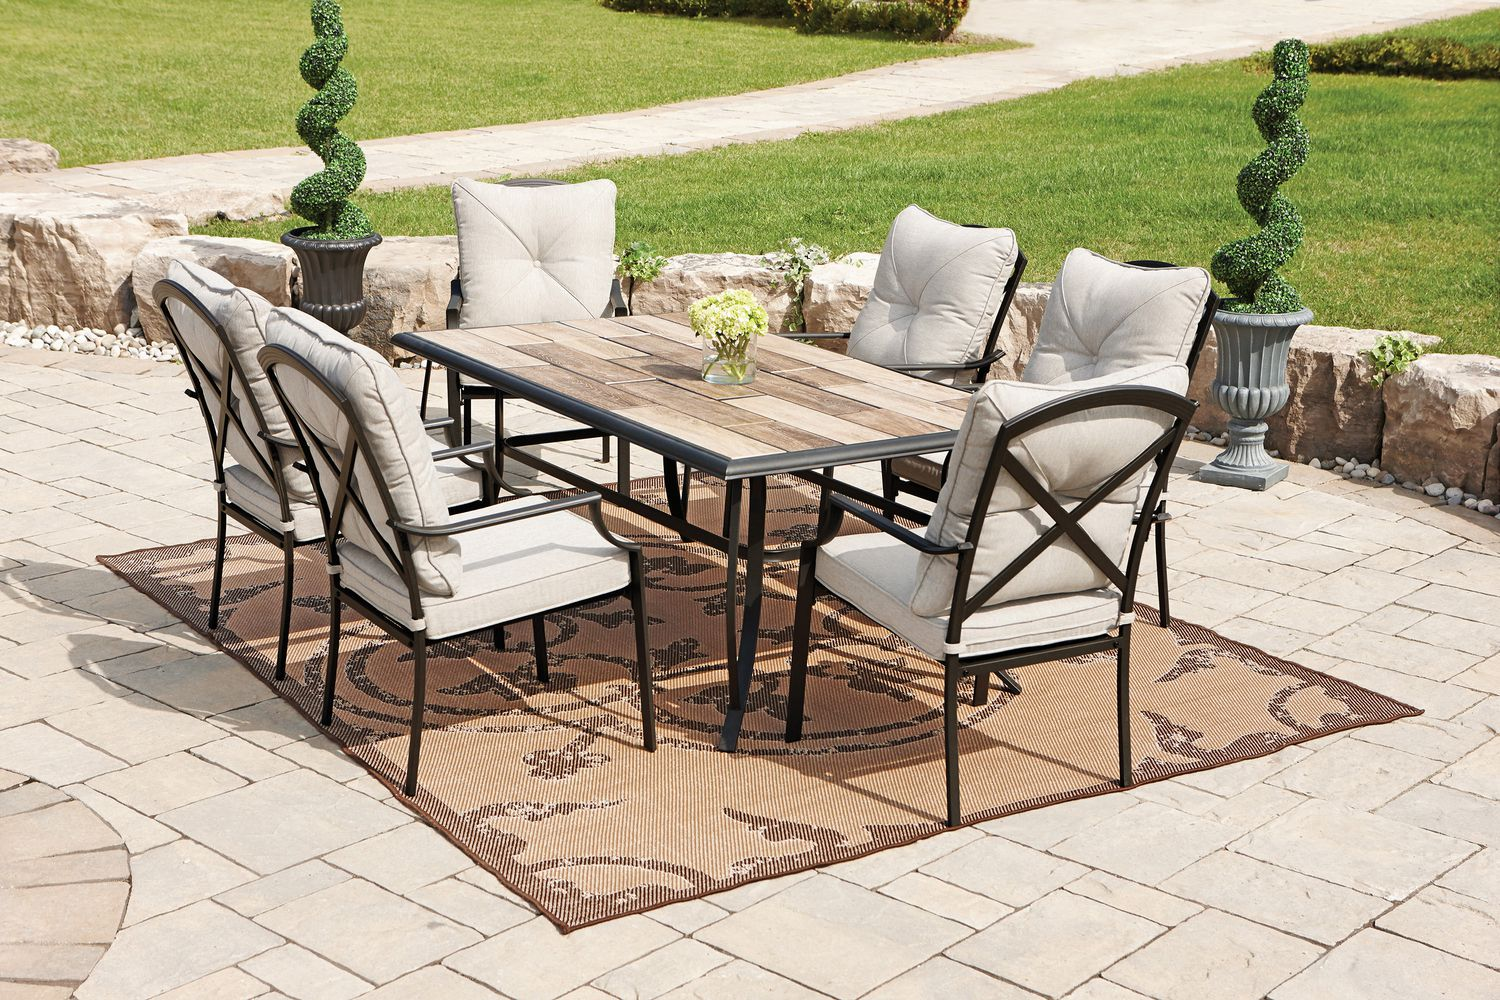 white set of walmart patio chairs idea with black wooden frame and rustic  table on brown. Walmart Patio Chair  How to Upgrade Your Outdoor Space   HomesFeed